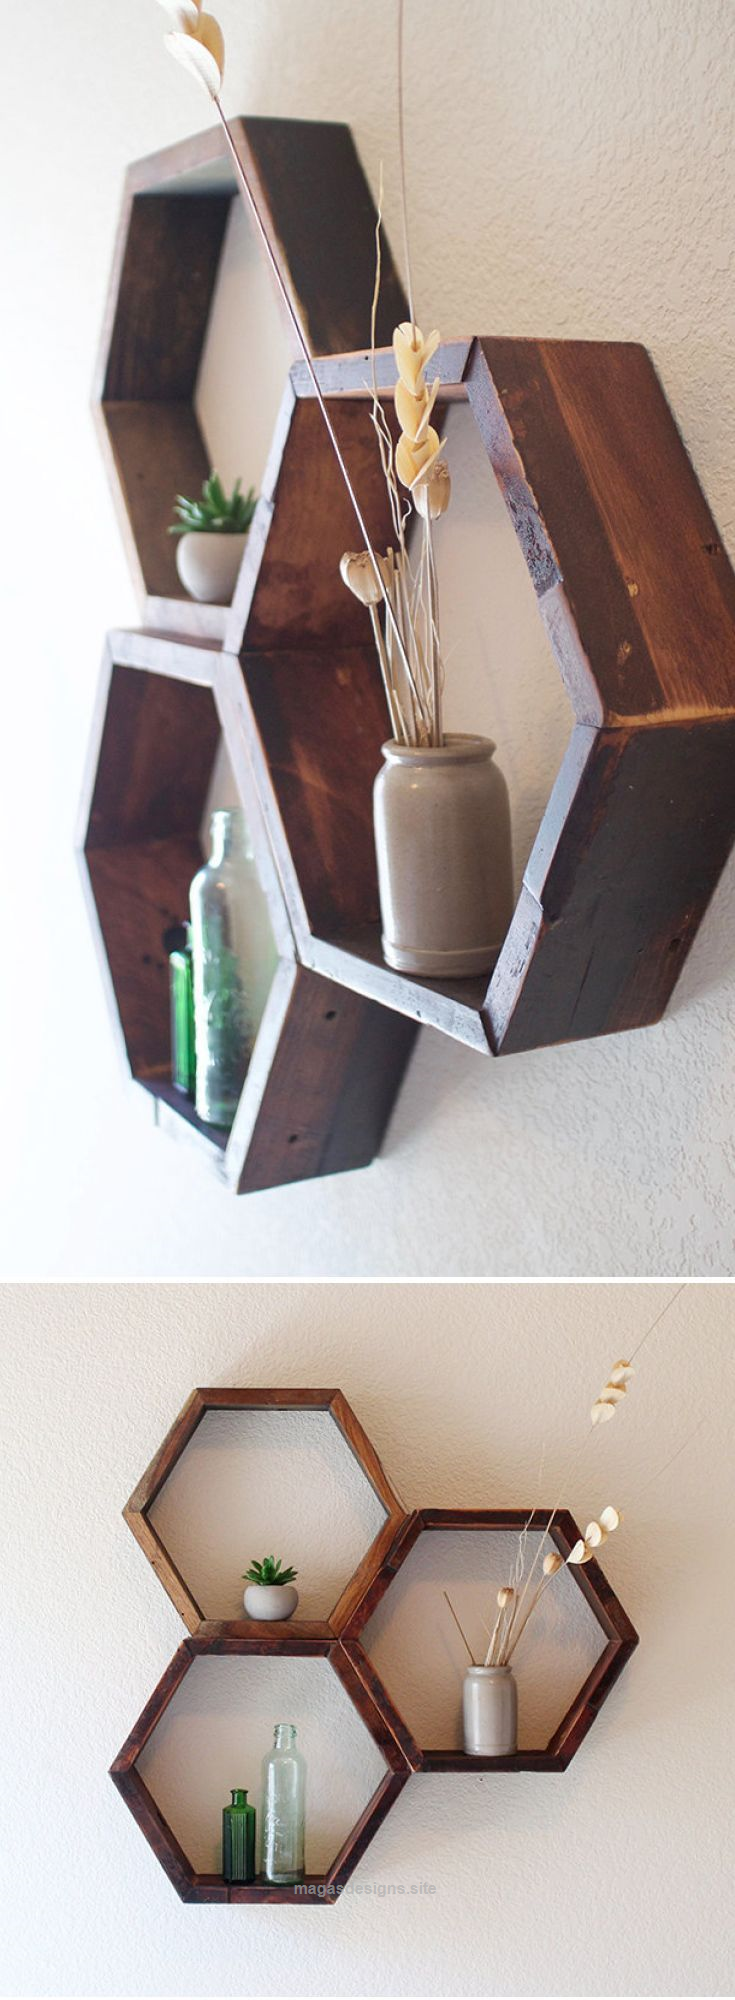 Check It Out Wooden Crafts To Make And Sell Rustic Wood Decor Ideas